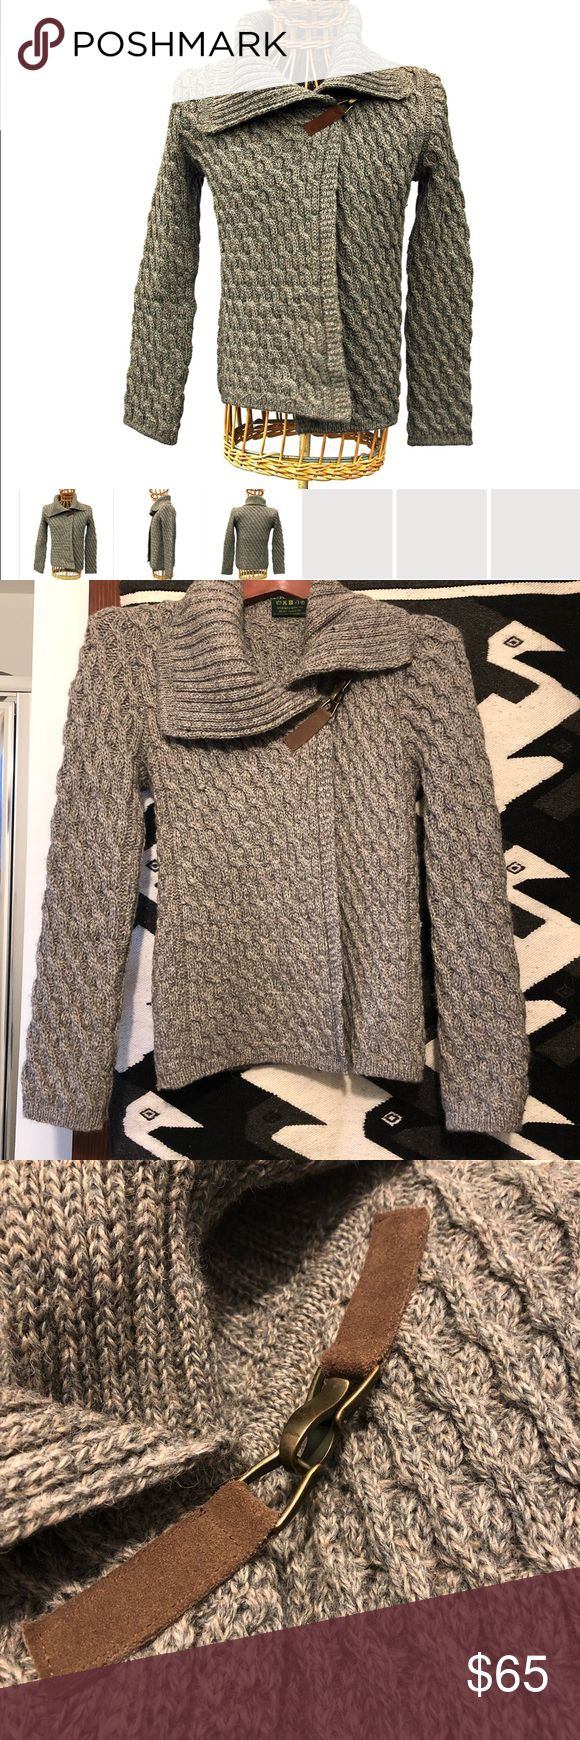 NWOT 100% British Wool Crossover Cardigan Sweater Beautiful Glencroft 100% British wool sweater made in the UK. Speckled gray color. Like new condition. Smoke and pet free home!   Description: This luxury ladies cardigan is made from high quality British wool in a waffle knit pattern. A perfect match to a number of different outfits, it also has a large collar and asymmetric buckle fastener. Buckle fastener made from real leather and brass. Glencroft Sweaters Cardigans